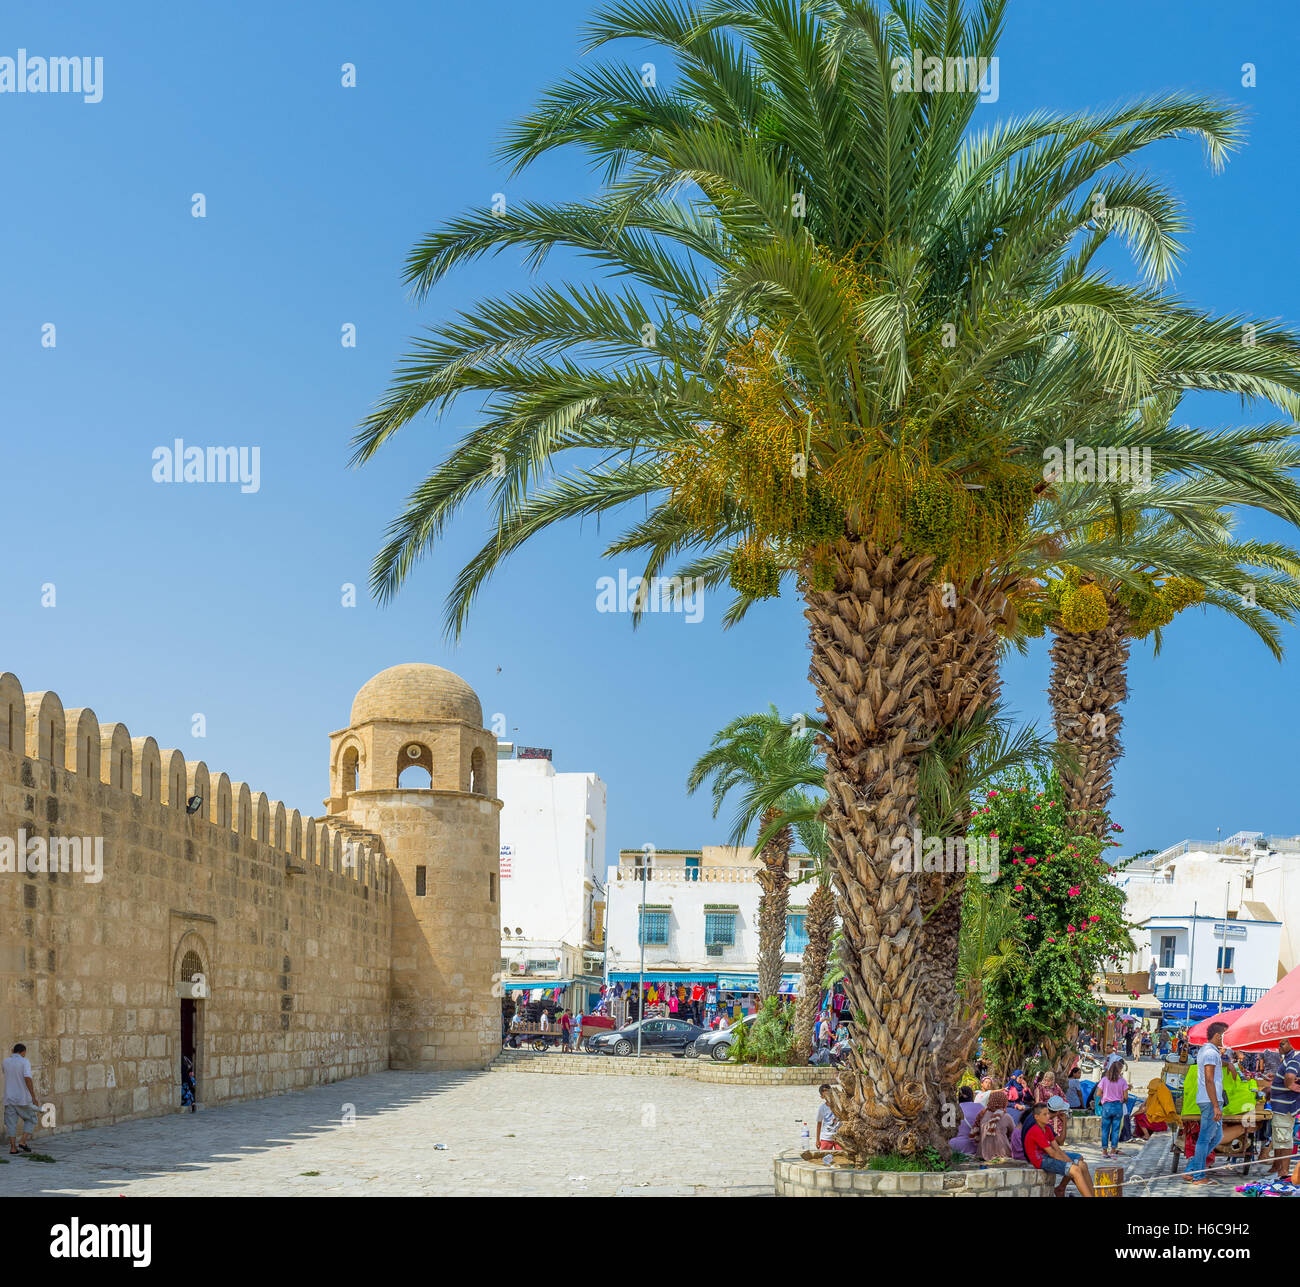 The Place des Martyrs is the central square of the city, here locates the Grand Mosque - Stock Image